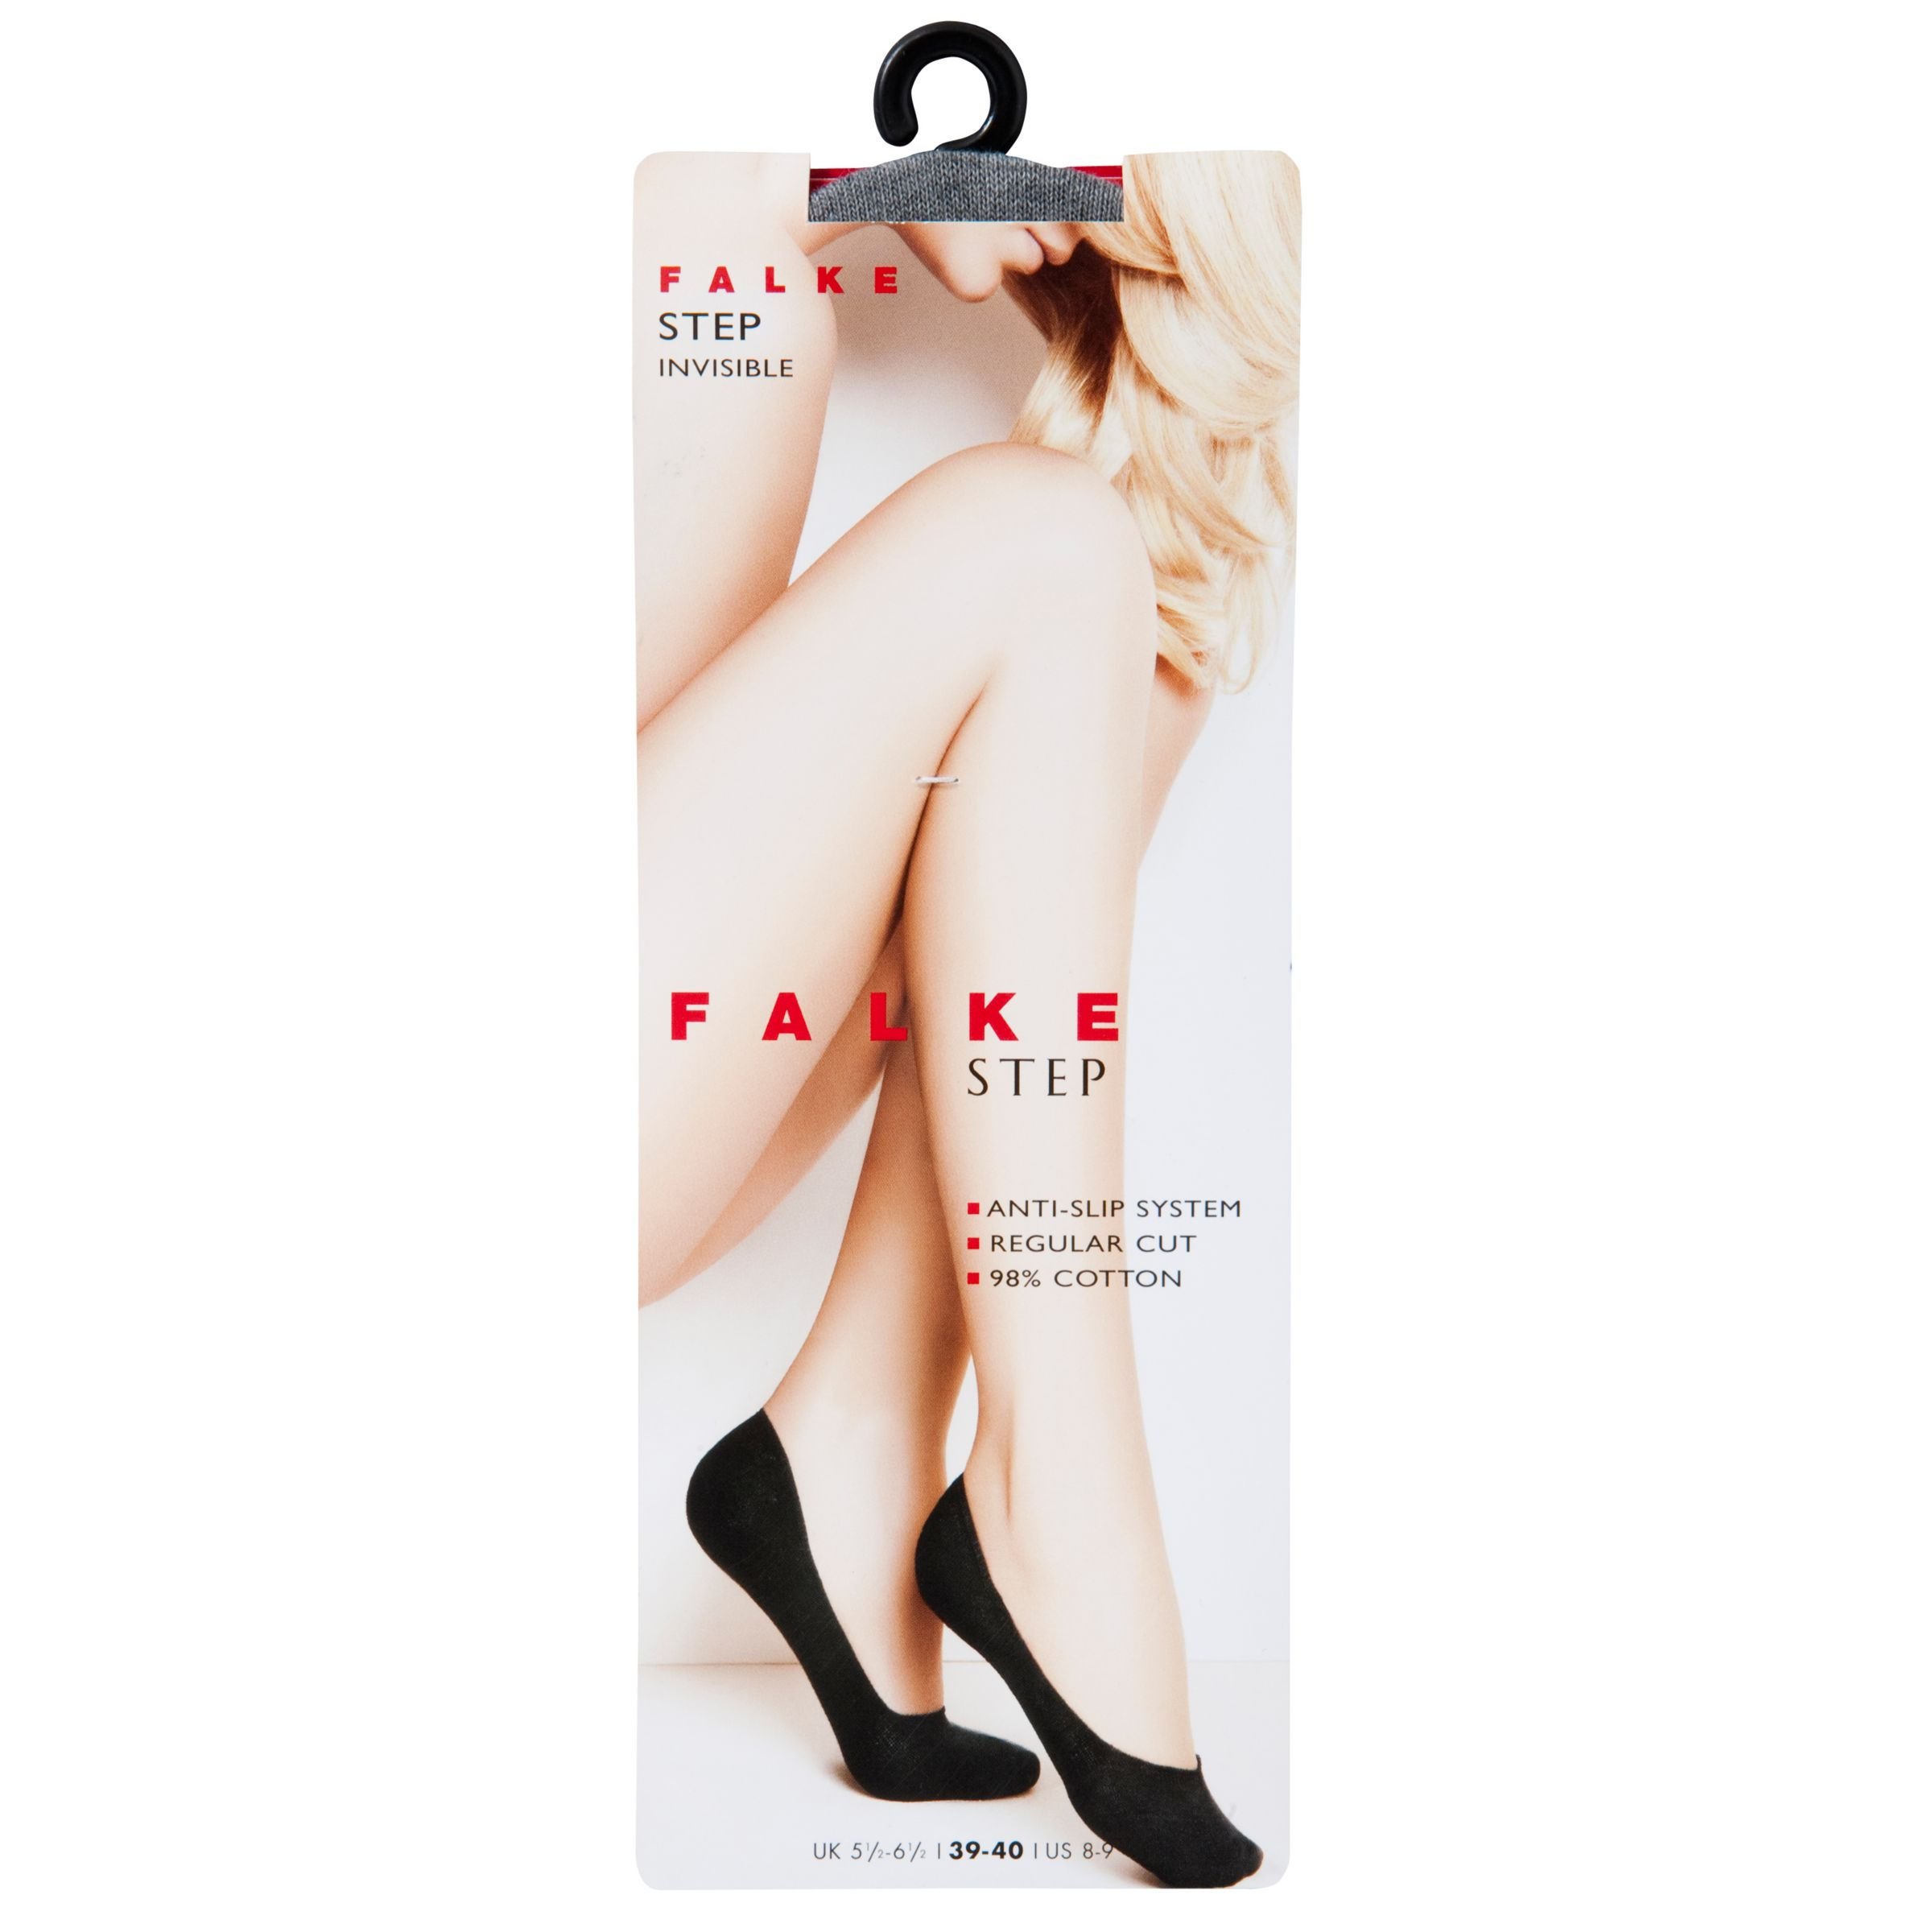 Falke Cotton Step Shoe Liner, Light grey